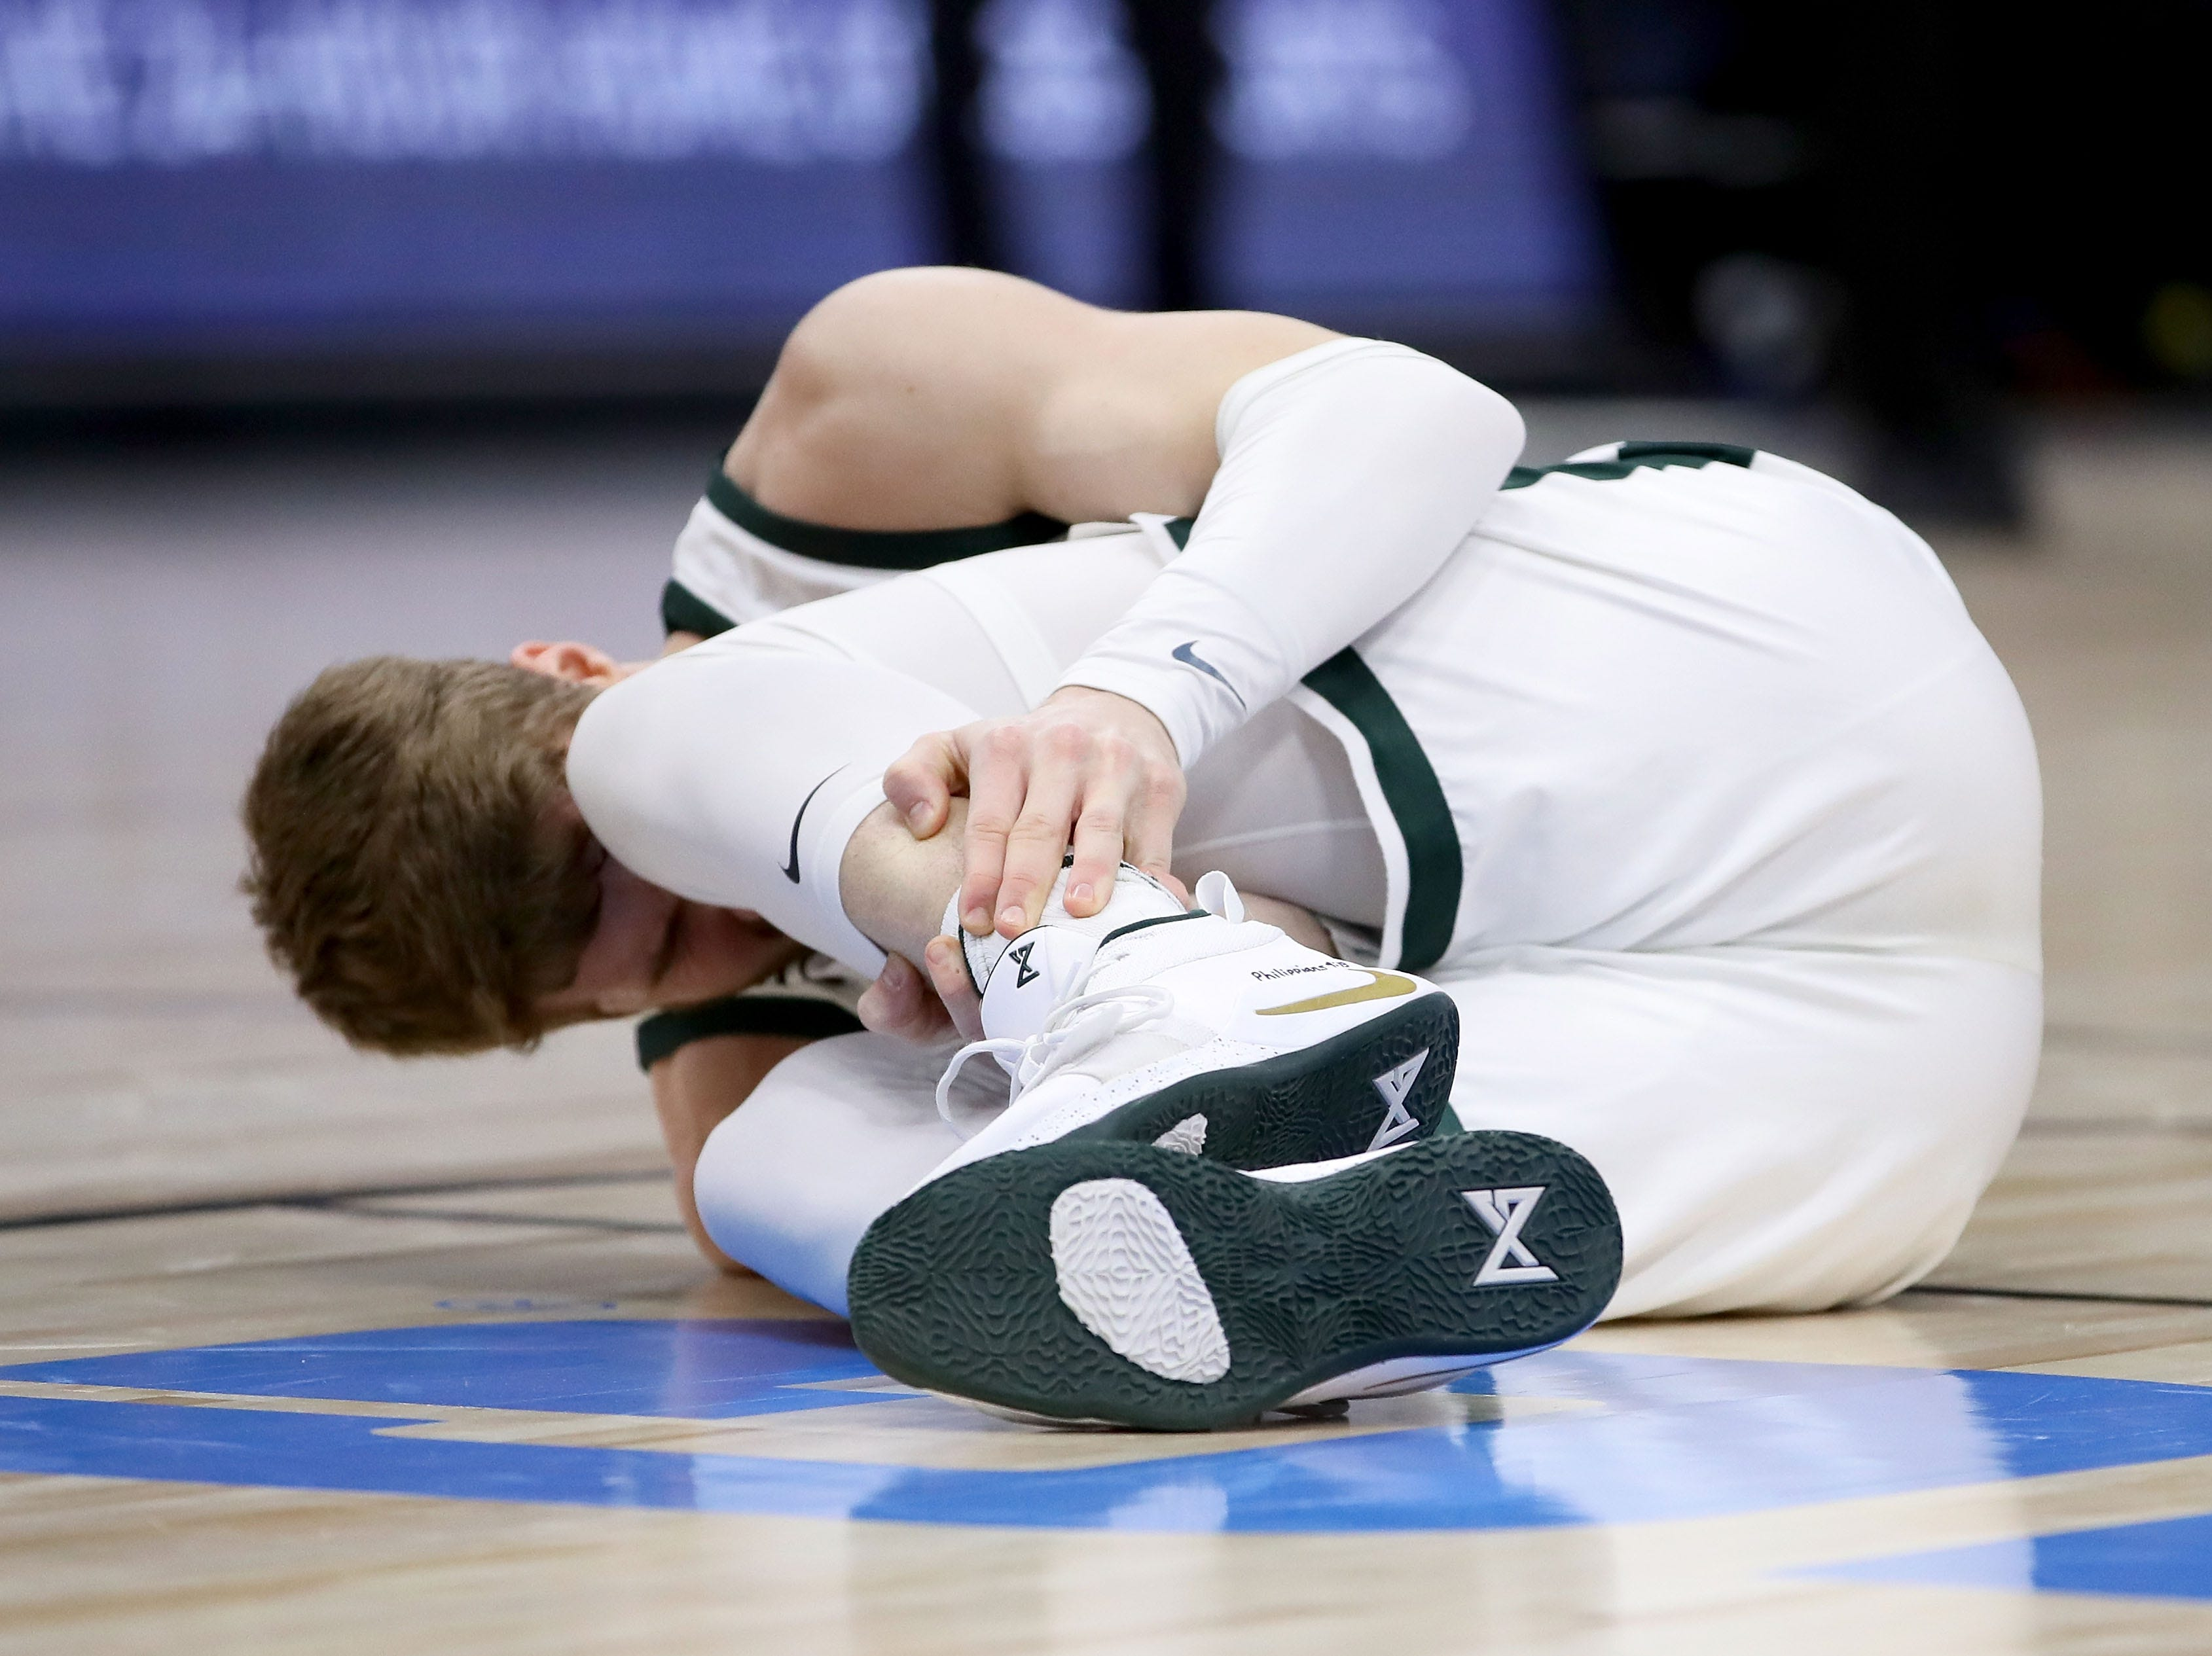 CHICAGO, ILLINOIS - MARCH 17:  Kyle Ahrens #0 of the Michigan State Spartans reacts after being injured in the first half against the Michigan Wolverines during the championship game of the Big Ten Basketball Tournament at the United Center on March 17, 2019 in Chicago, Illinois.